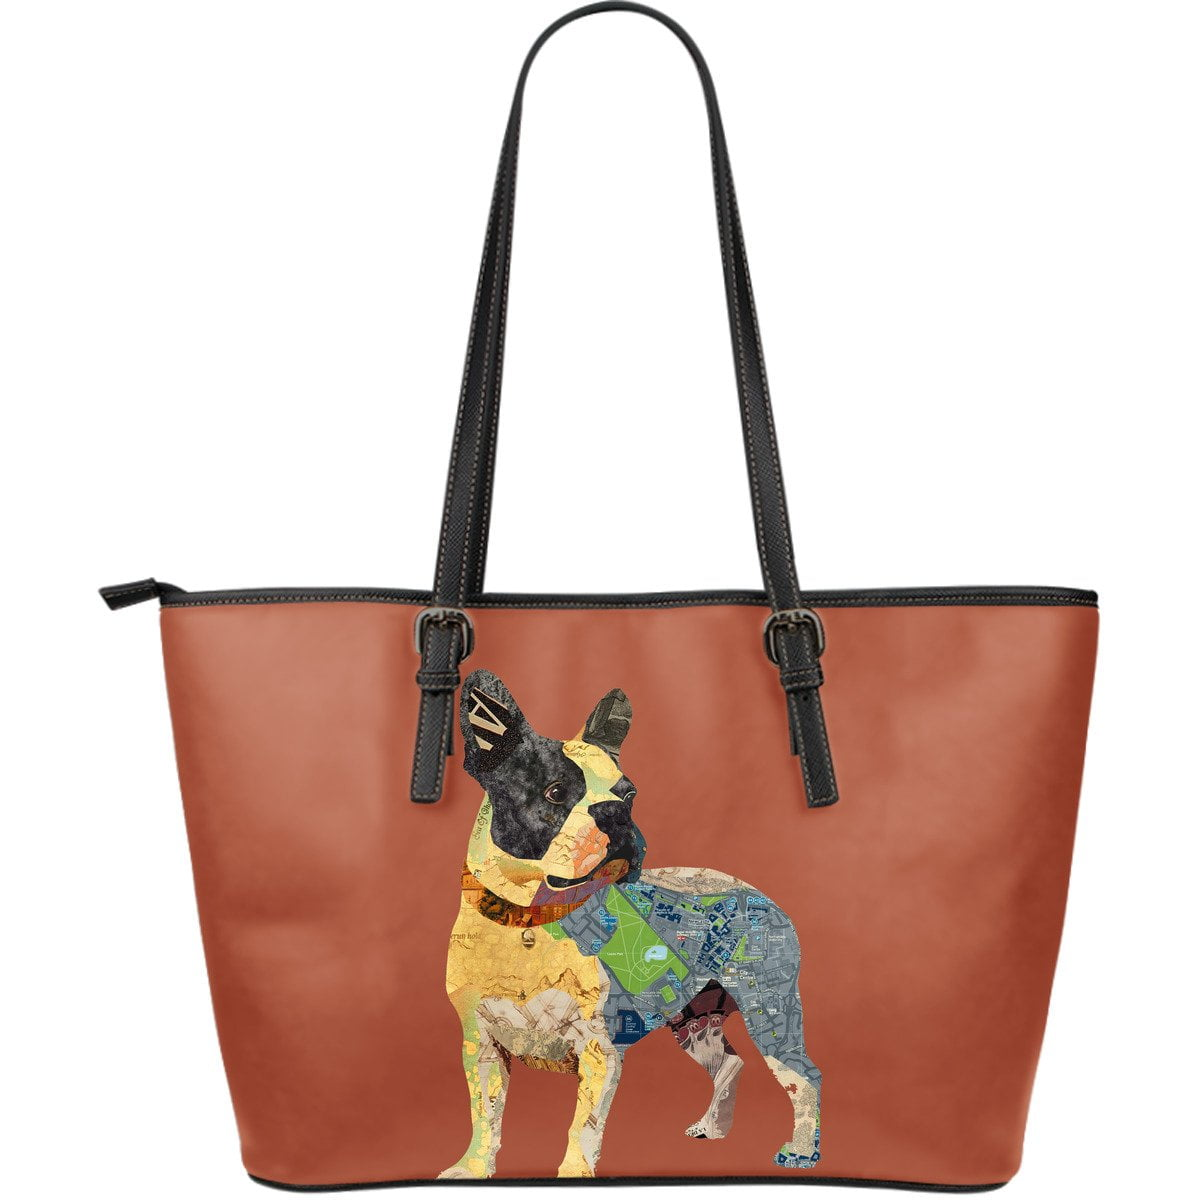 Archie - Bag - Frenchie Bulldog Shop